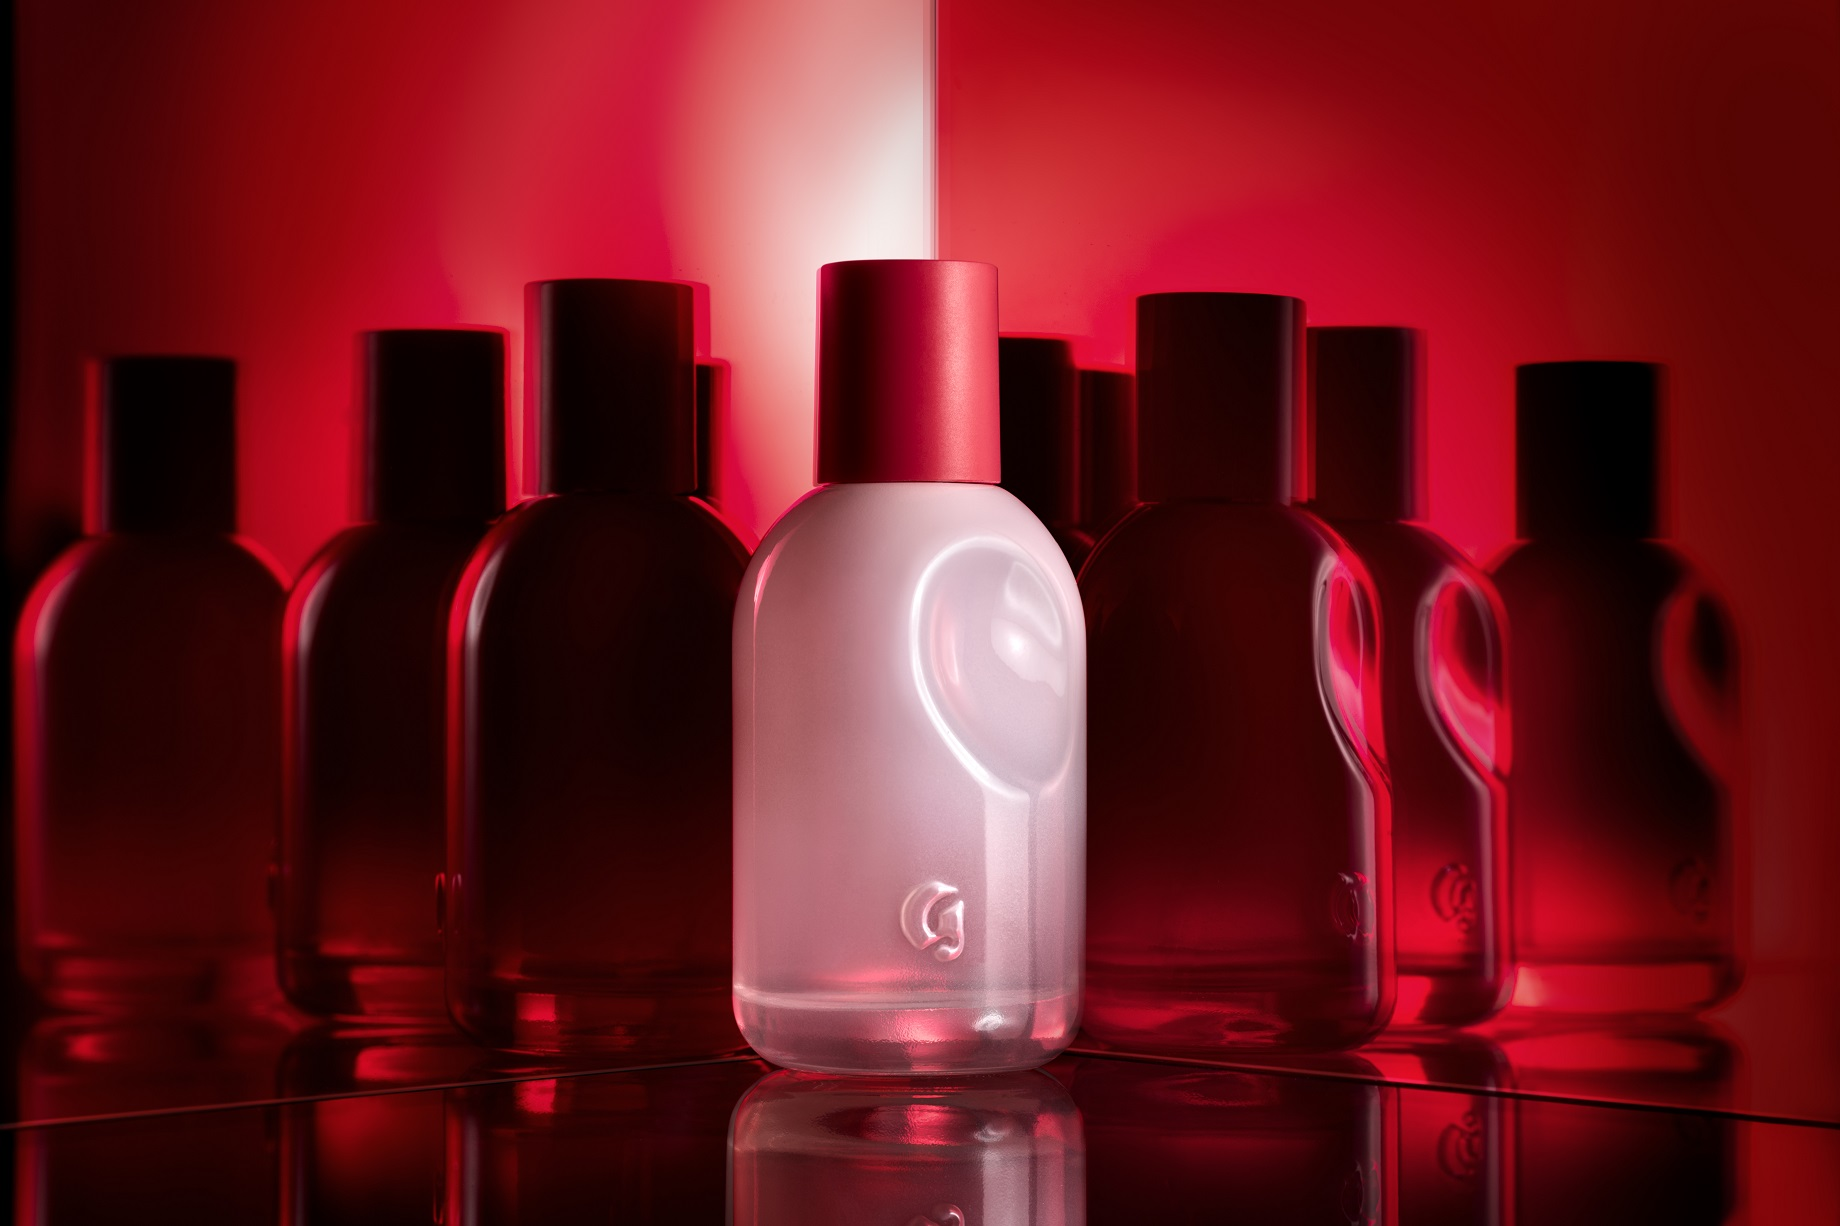 February Perfume of the Month: Glossier You